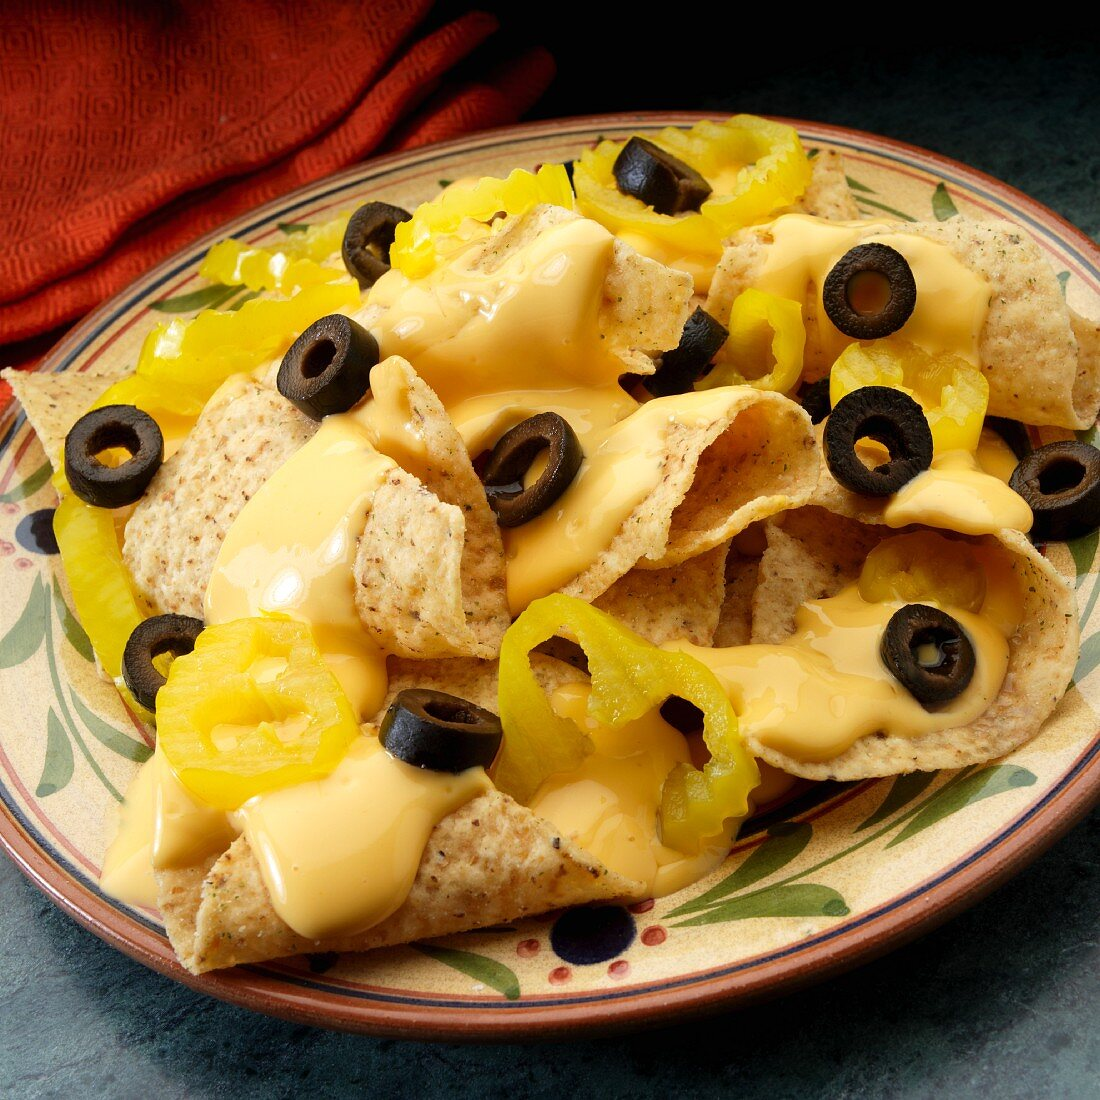 White corn tortilla chips with cheese sauce, black olives and banana peppers